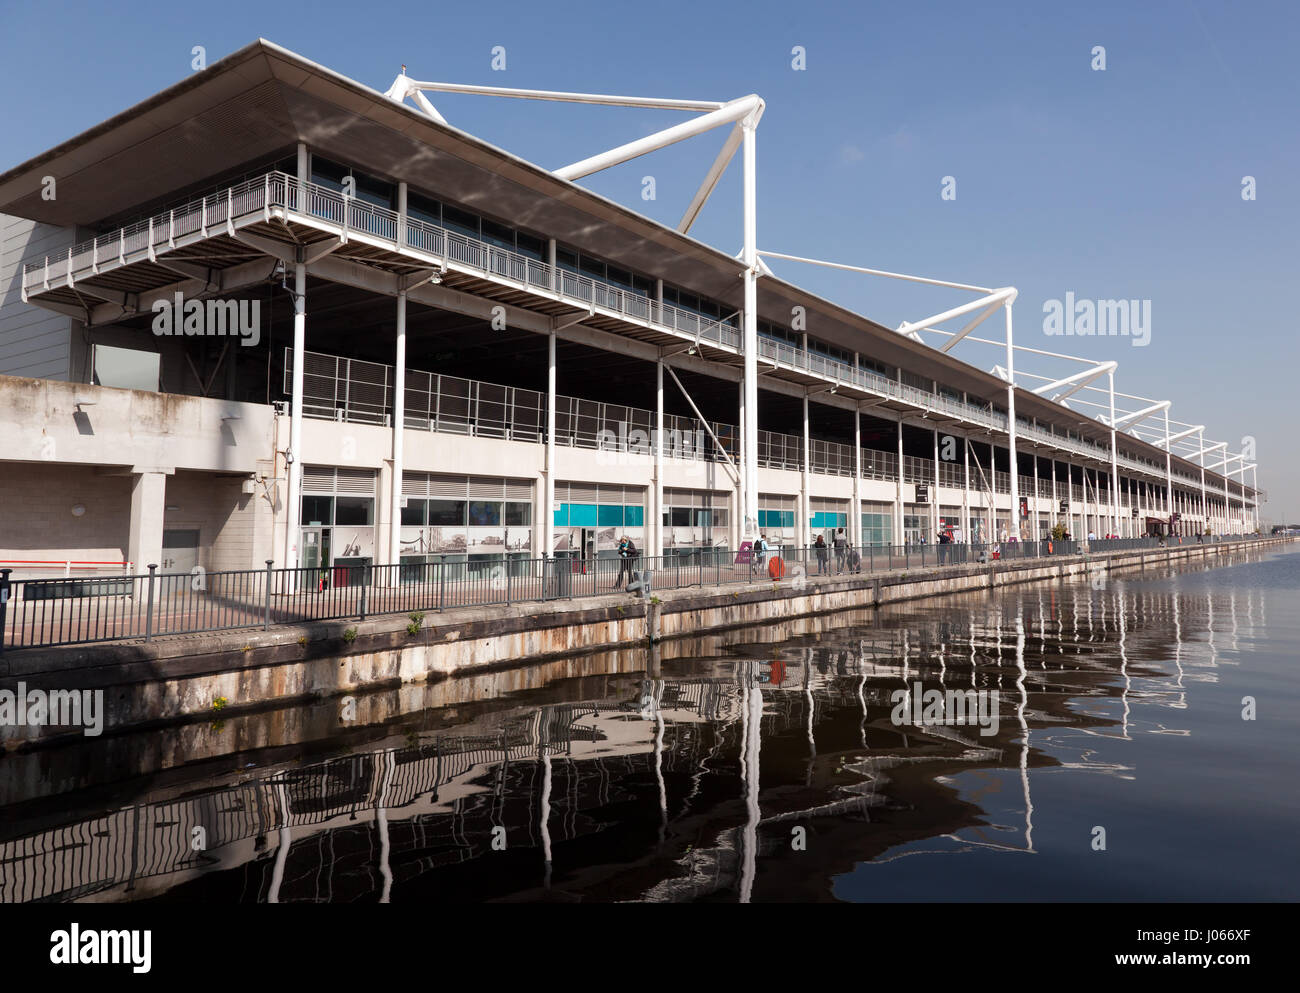 View of the waterfront section of the Excel  Exhibition Centre at the Royal Victoria Docks, Newham, London - Stock Image